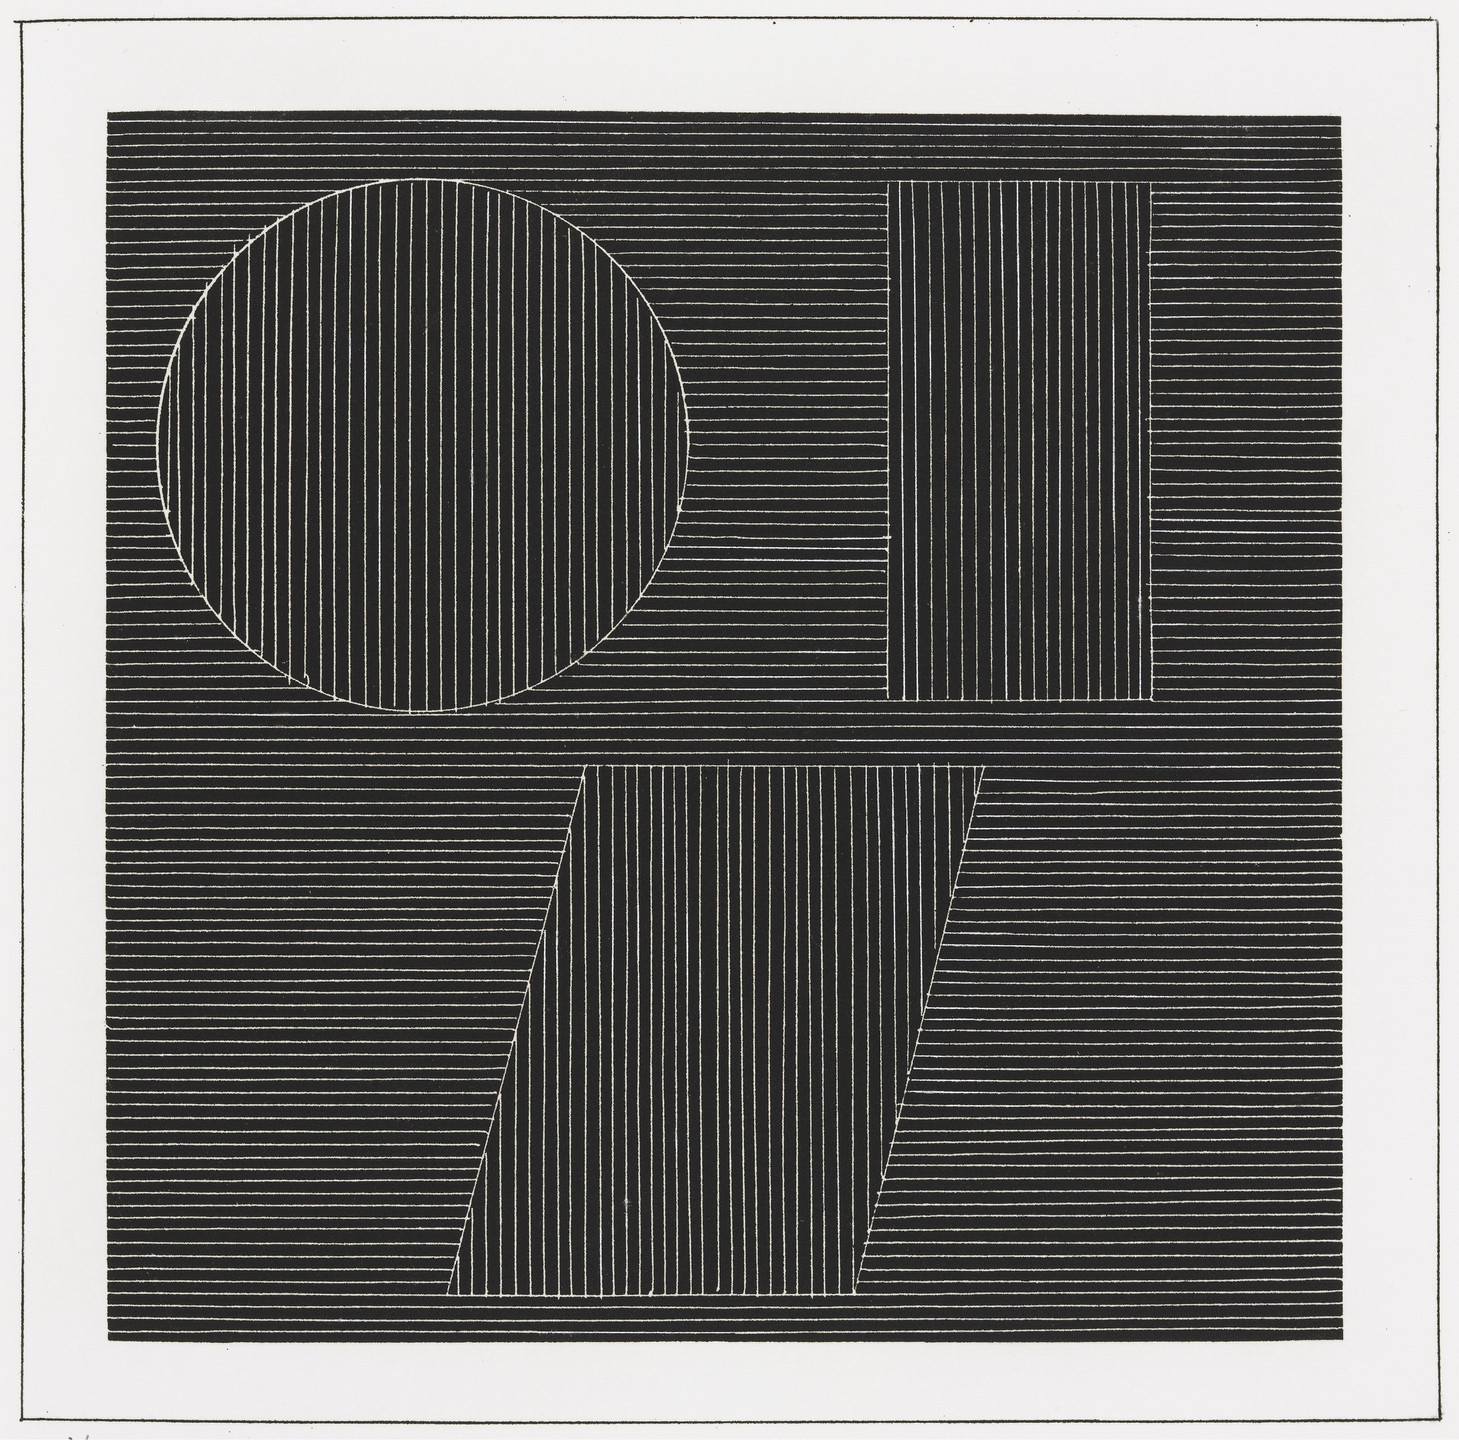 Sol LeWitt. Plate (folio 37) from Six Geometric Figures and All Their Combinations, Volume I. 1980